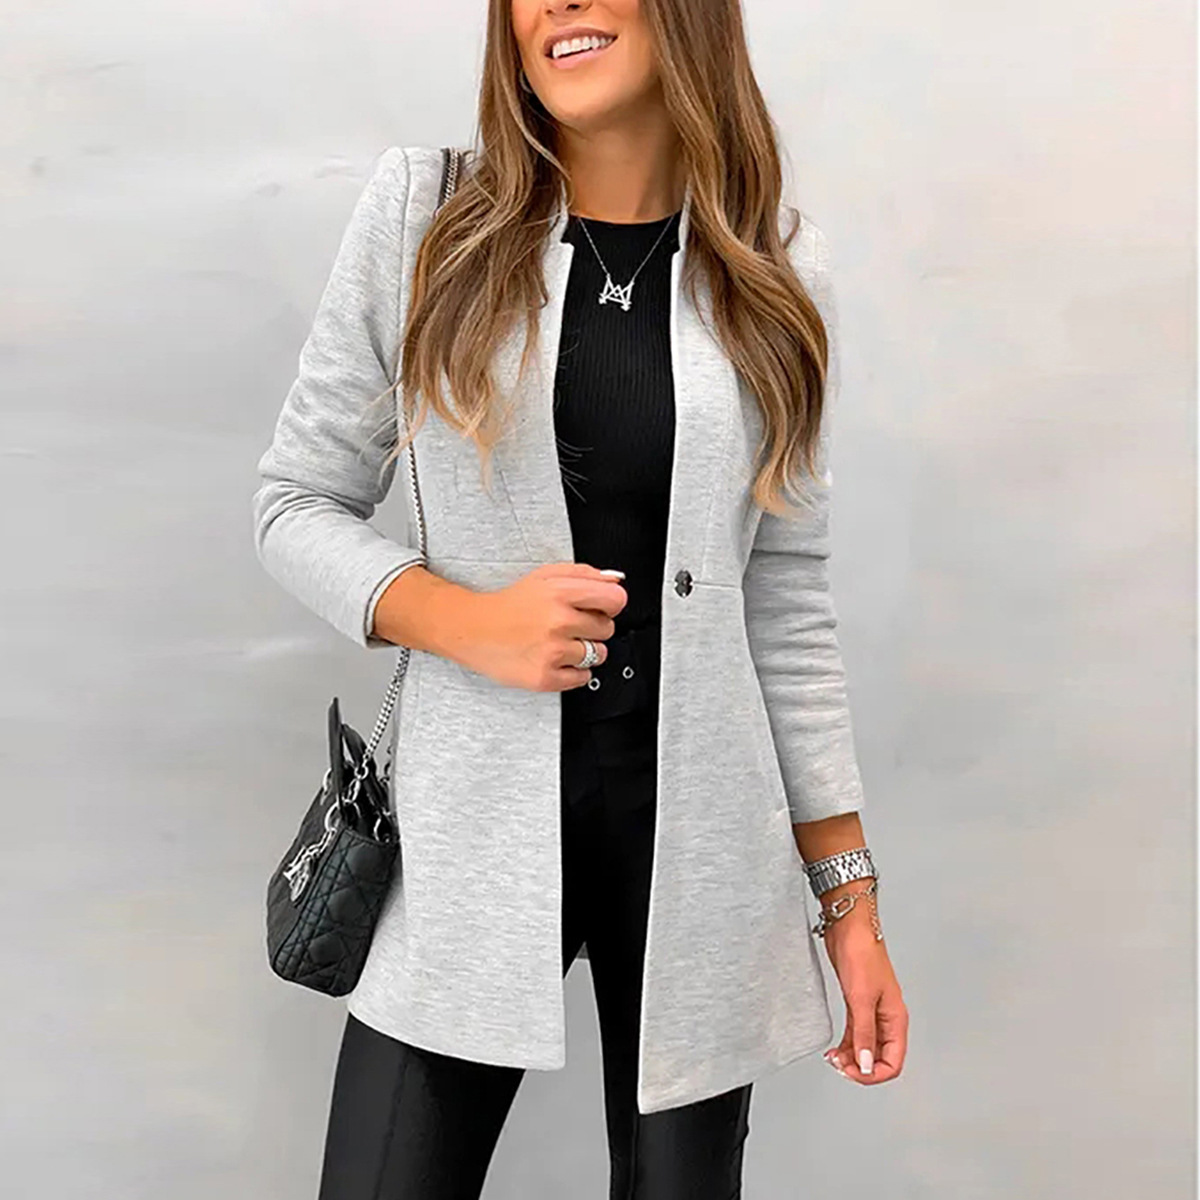 Elegant Women Blazer Suits 2019 New Autumn Winter Notched Collar Long Sleeve Slim Suit Jacket Office Ladies Black Gray Suit Coat